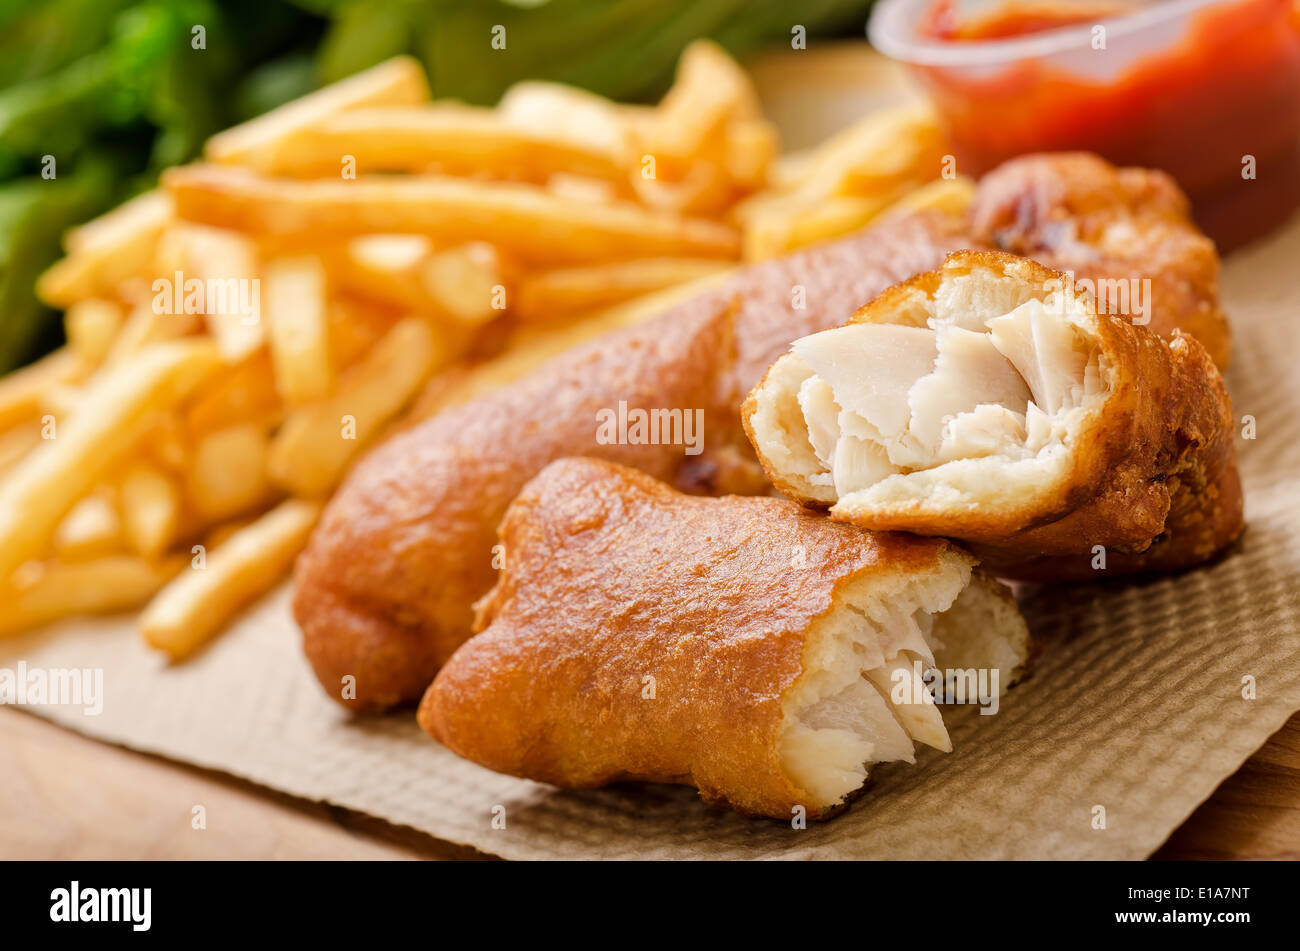 A delicious crispy battered deep fried fish and chips with greens and ketchup. - Stock Image